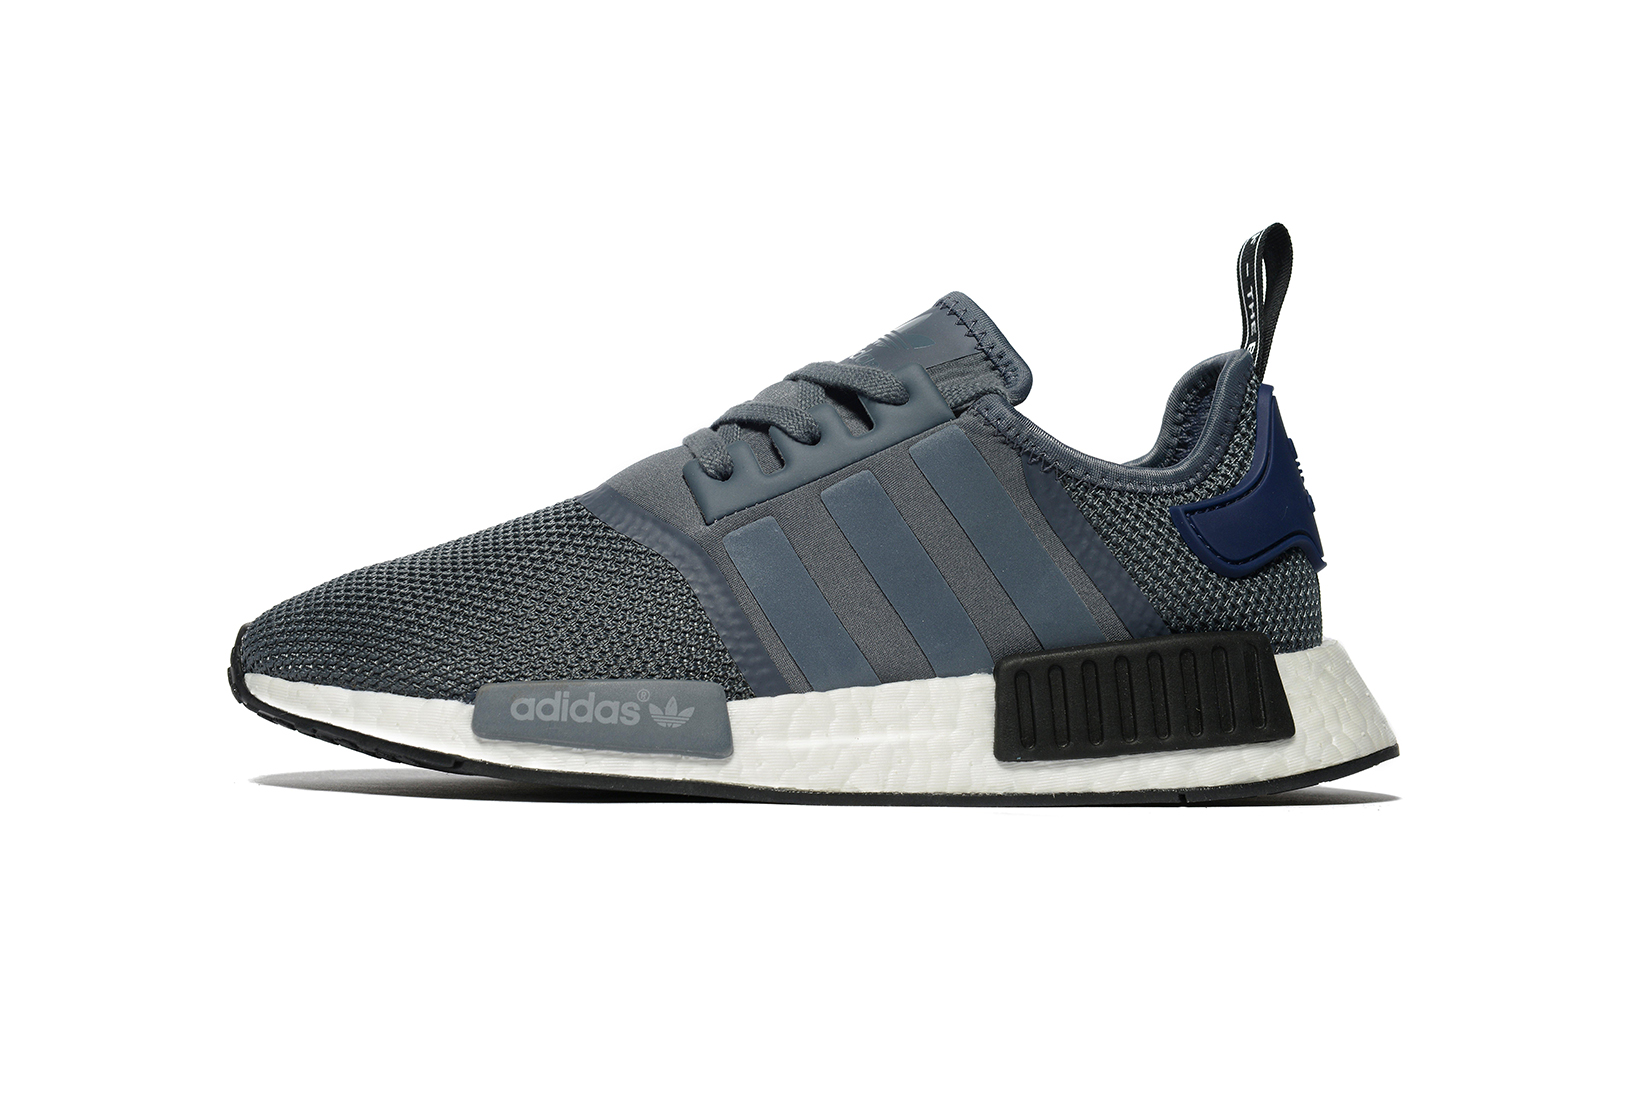 adidas Originals NMD R1 Grey JD Sports Exclusive - 1827962